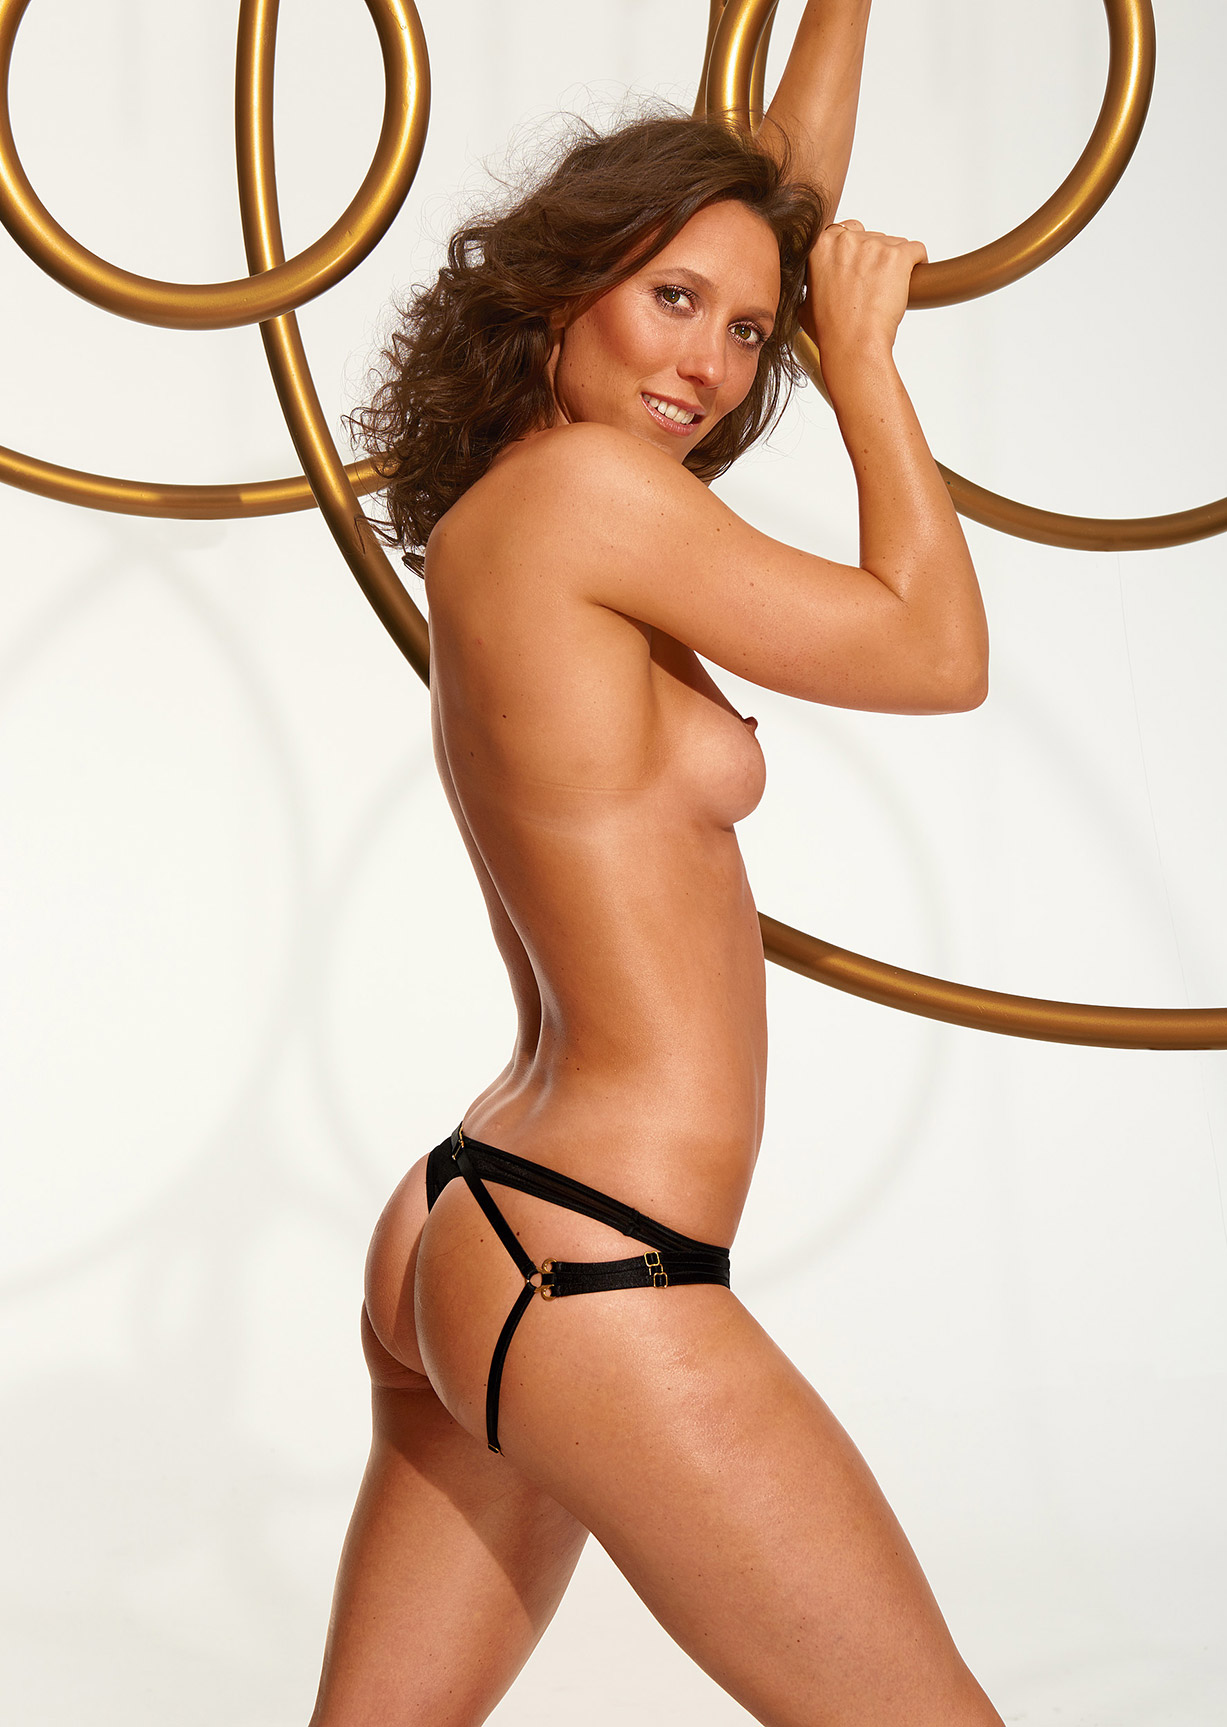 German-Nude-Olympic-Stars-for-Playboy-11.jpg